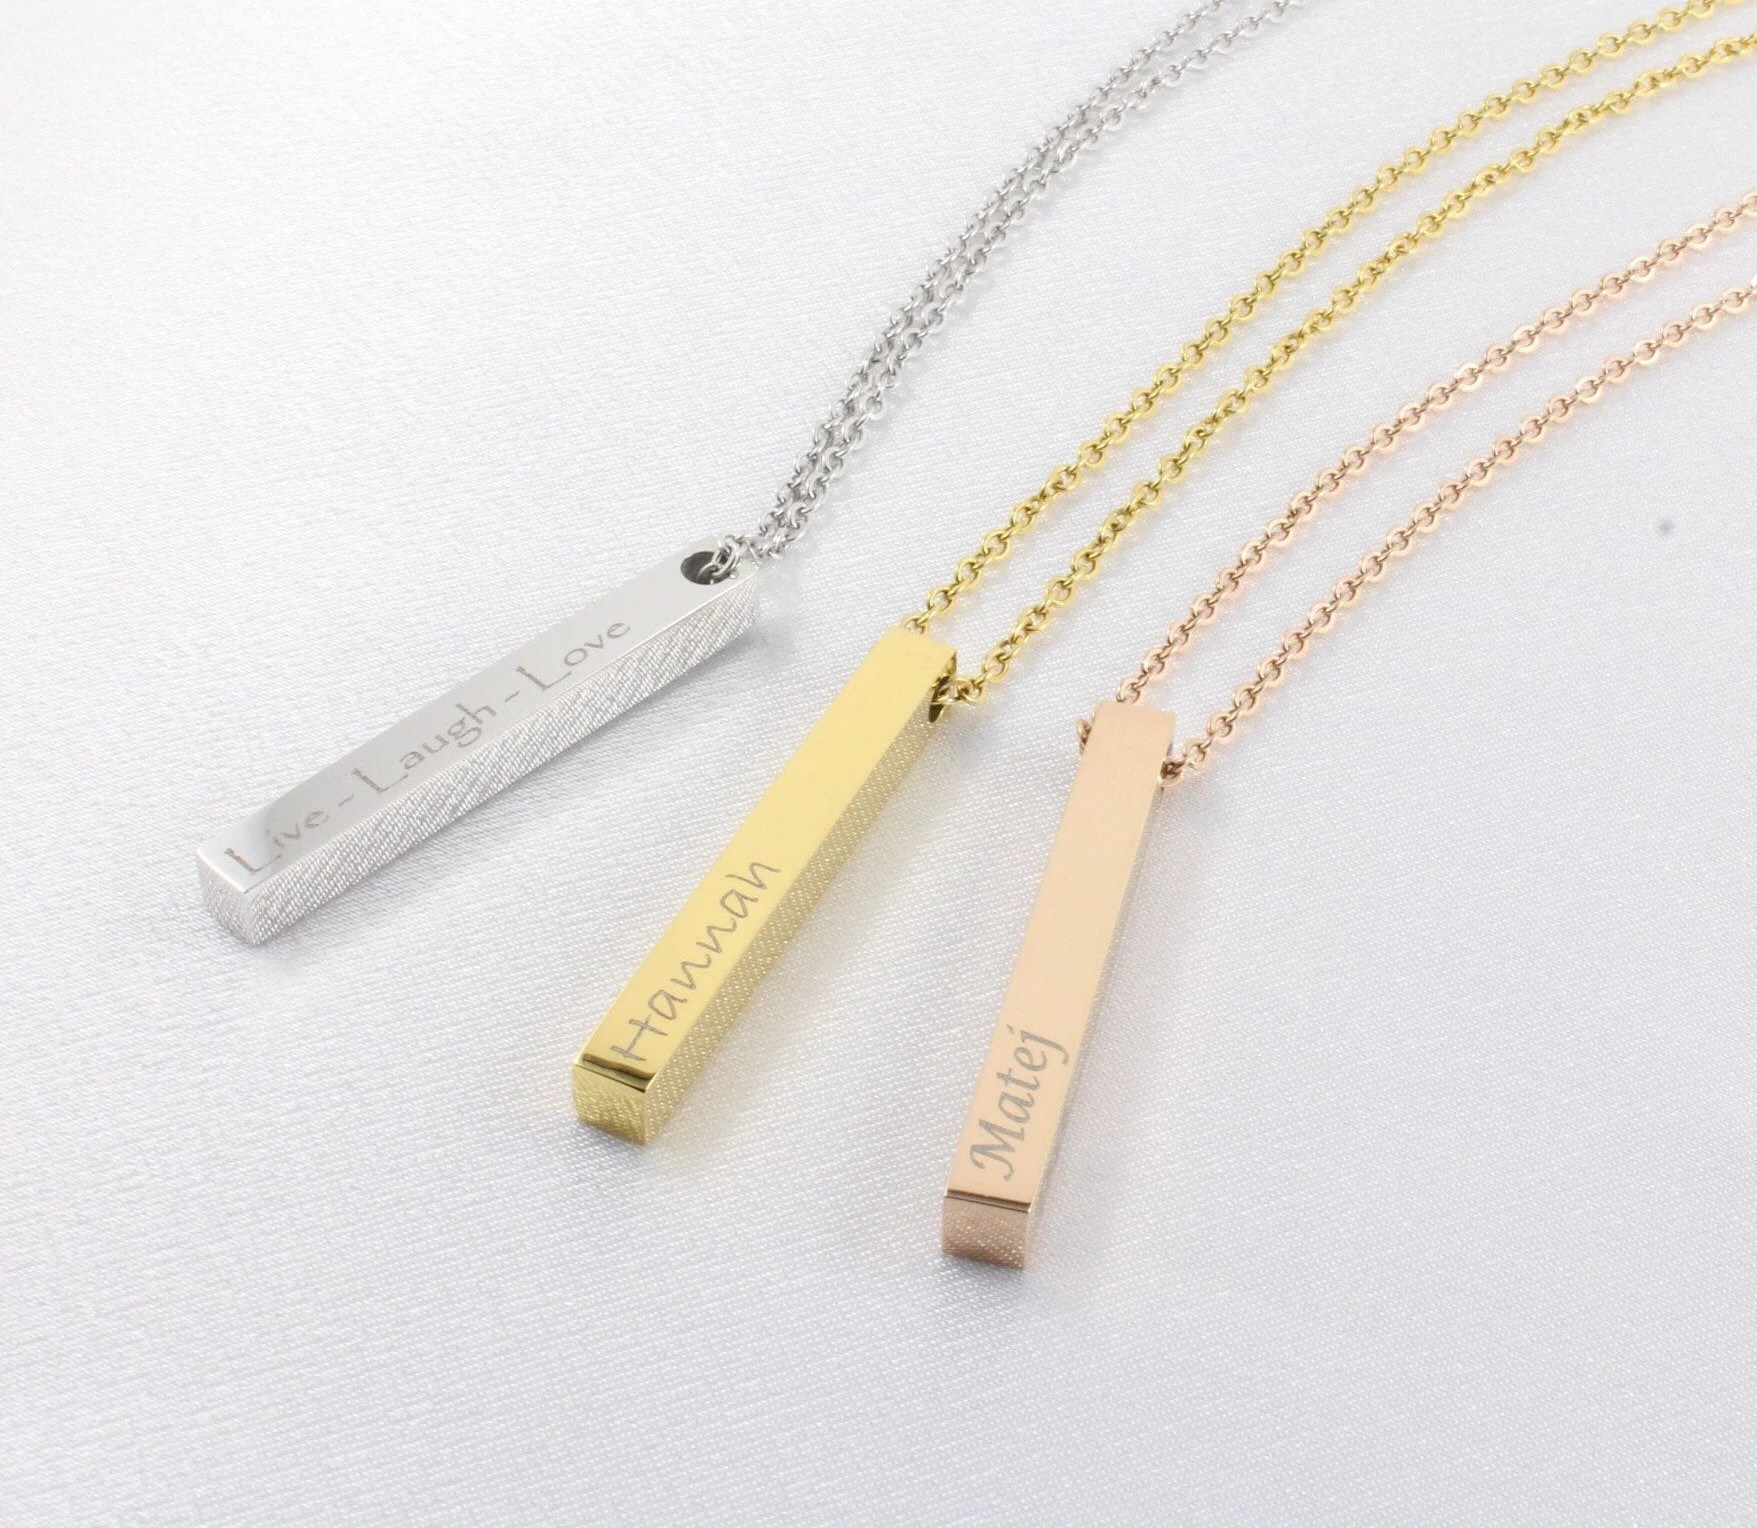 Personalized jewelry bar necklace custom laser engraved image 1